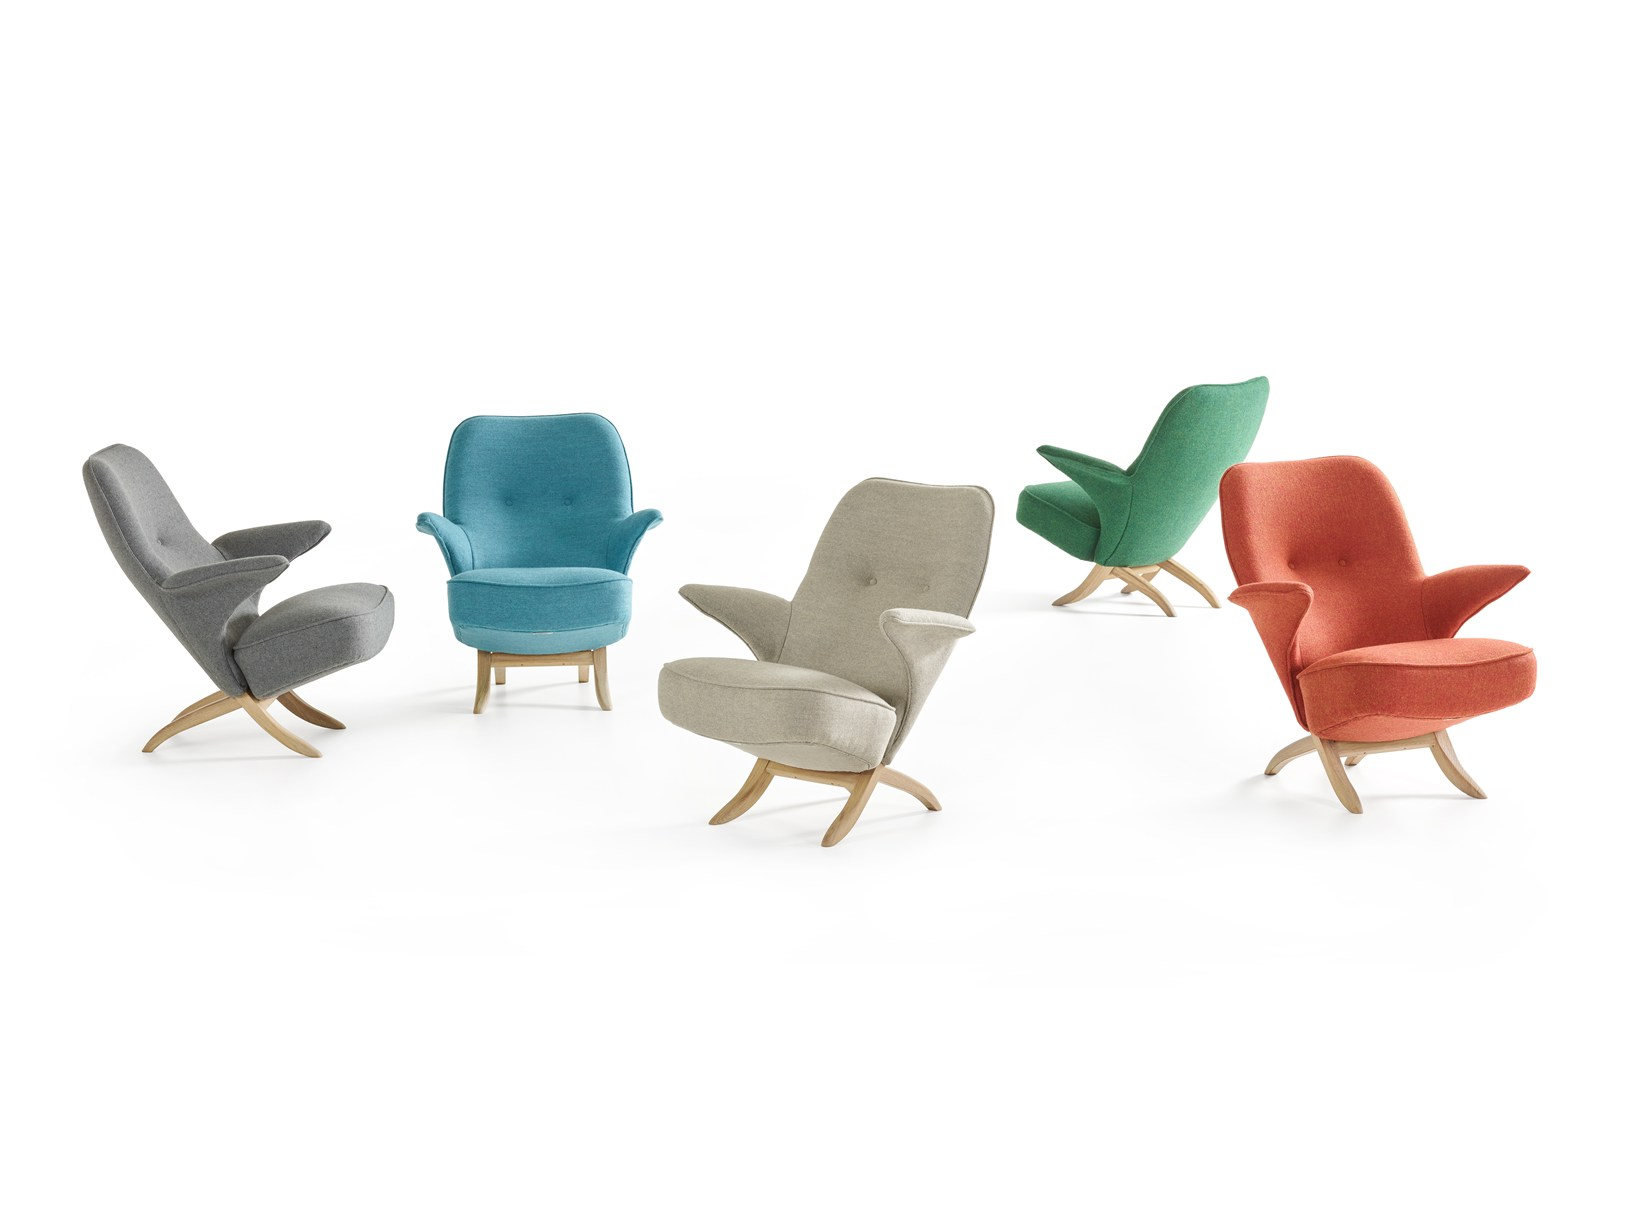 Pinguïn Chairs by Theo Ruth for Artifort